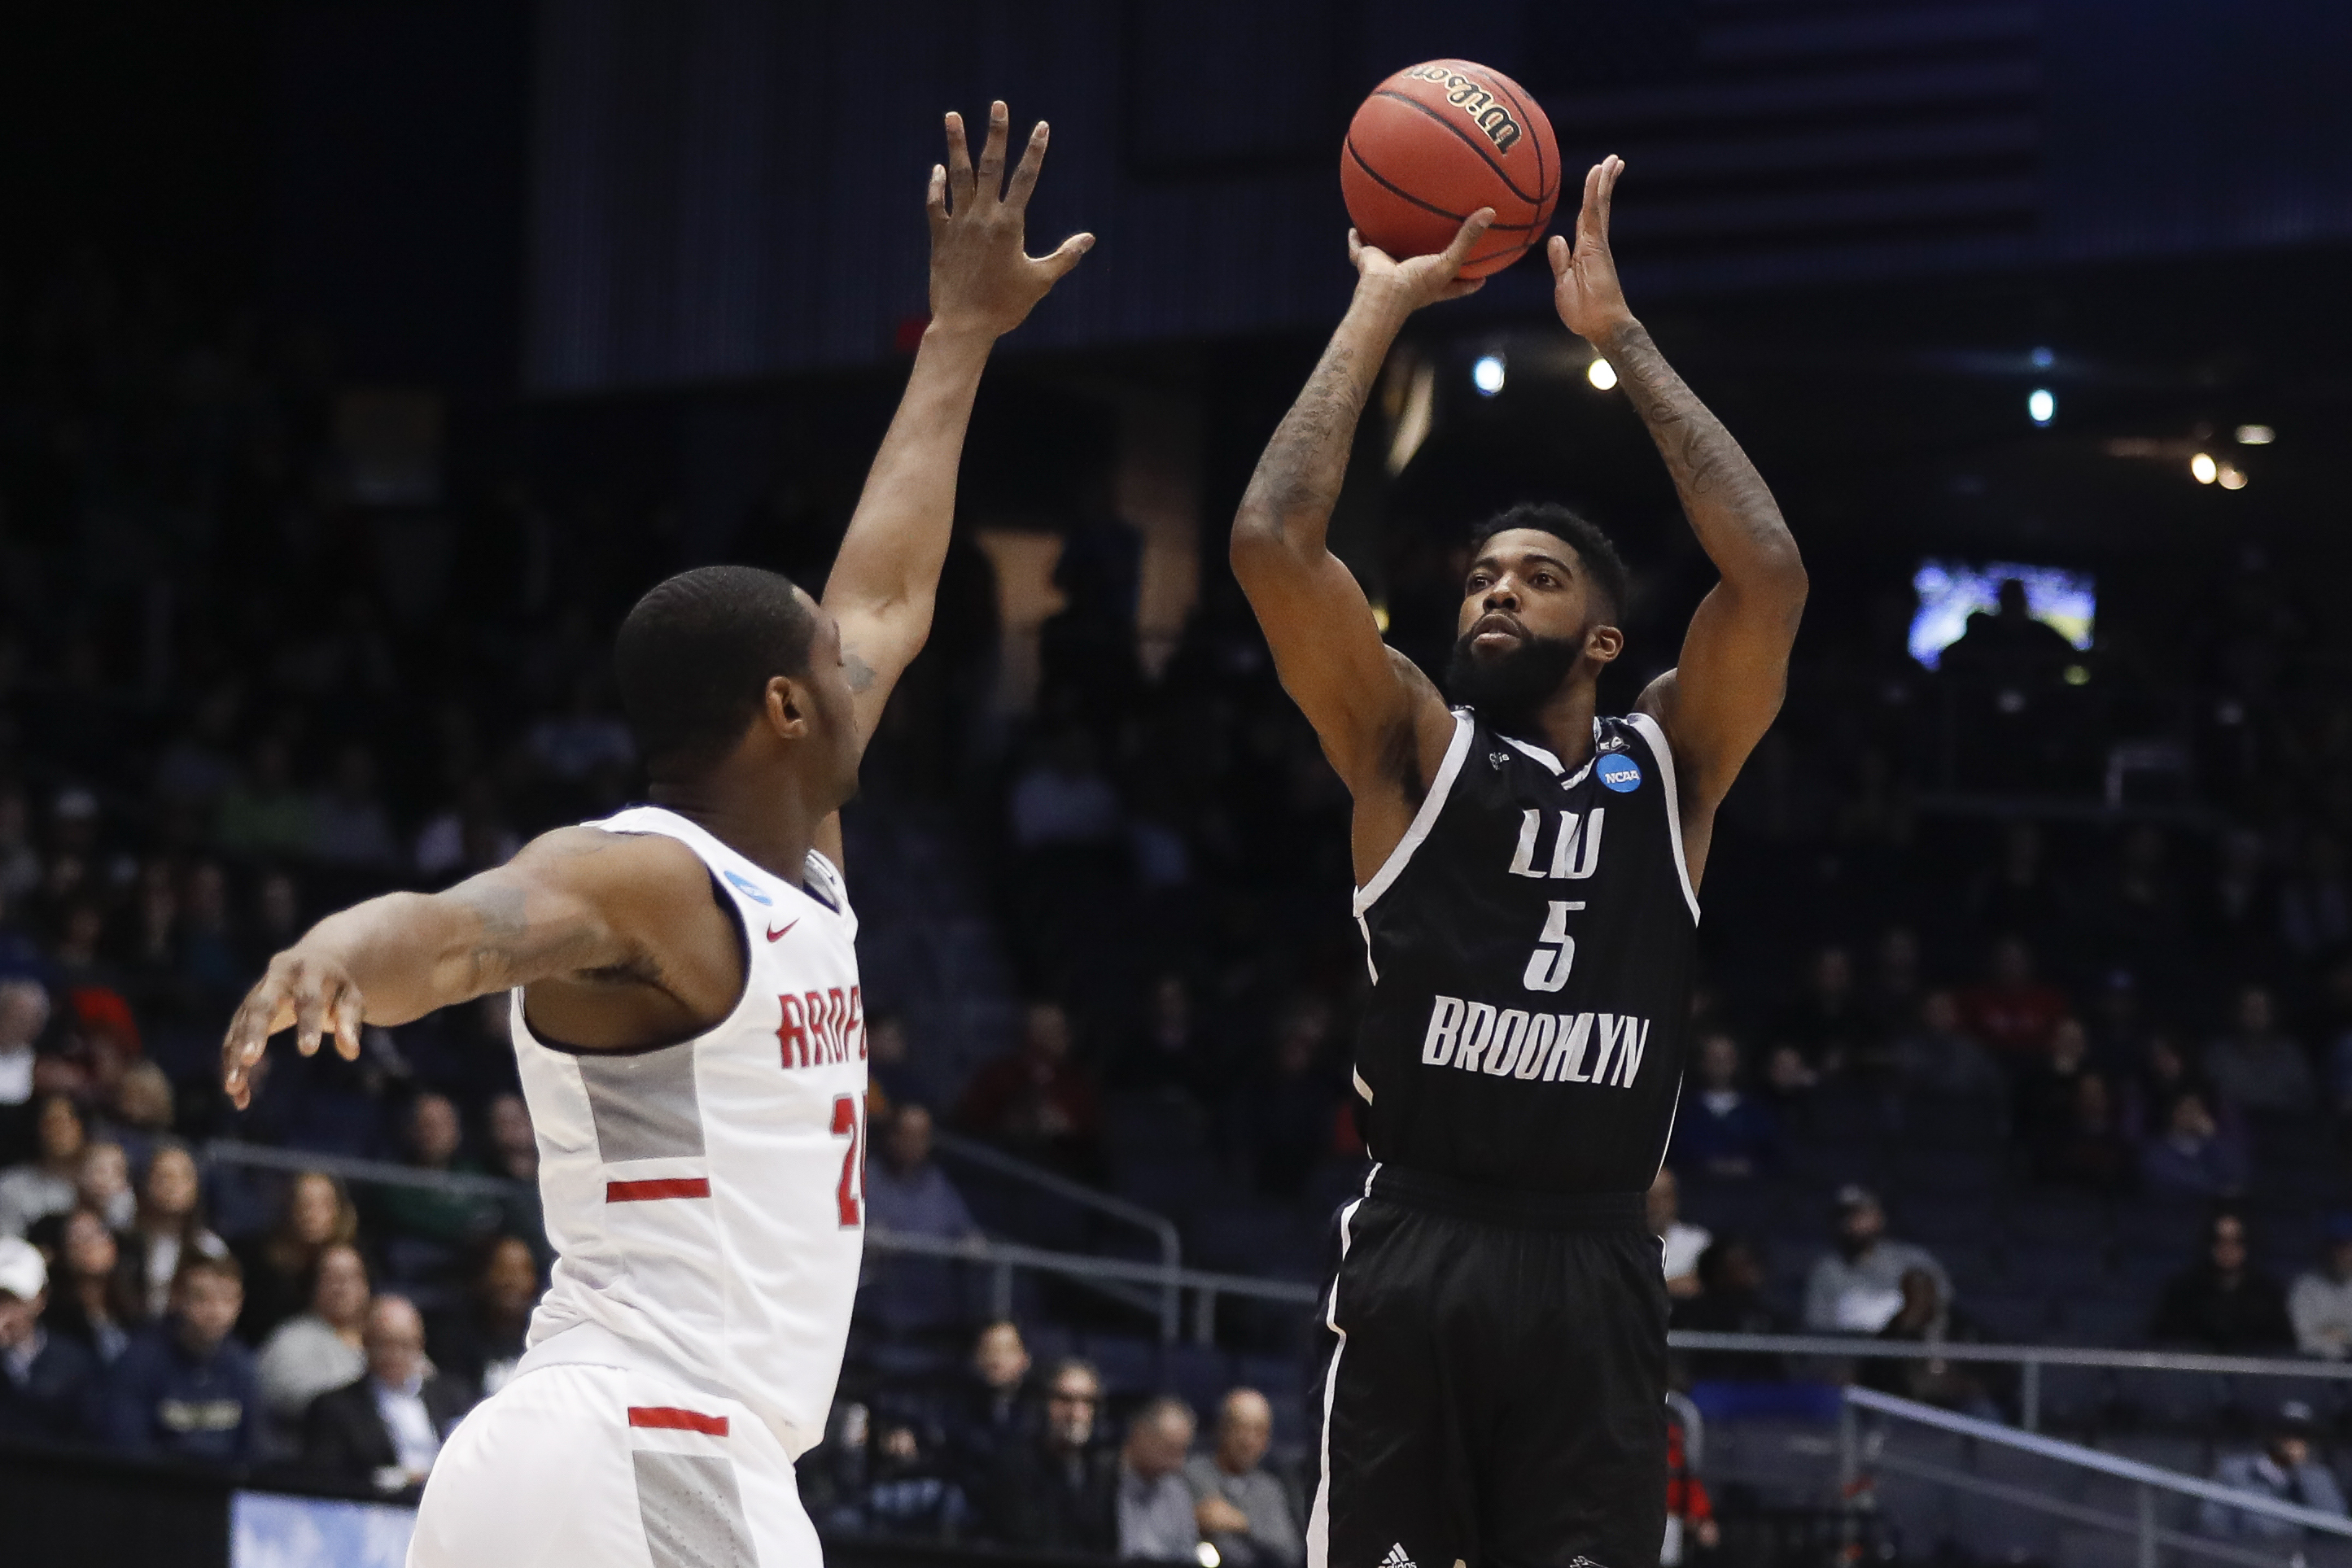 LIU Brooklyn's Zach Coleman (5) shoots against Radford's Ed Polite Jr. during the first half of a First Four game of the NCAA men's college basketball tournament, Tuesday, March 13, 2018, in Dayton, Ohio. (AP Photo/John Minchillo)